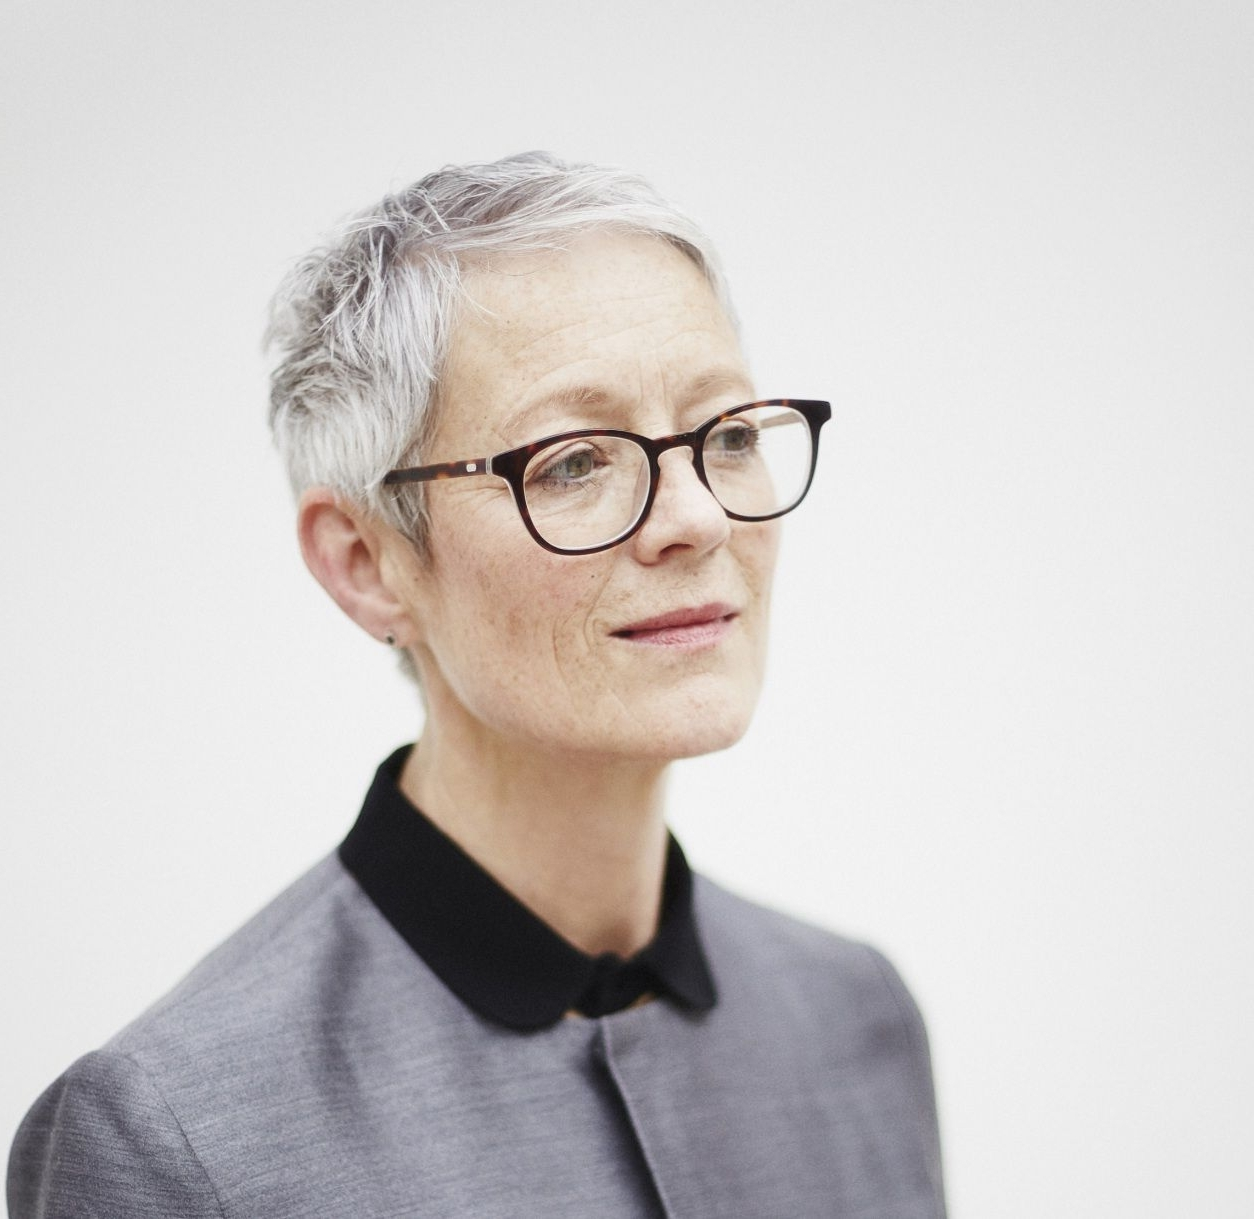 Pixie Haircuts For Older Women Intended For Best And Newest Pixie Hairstyles With Glasses (View 9 of 15)